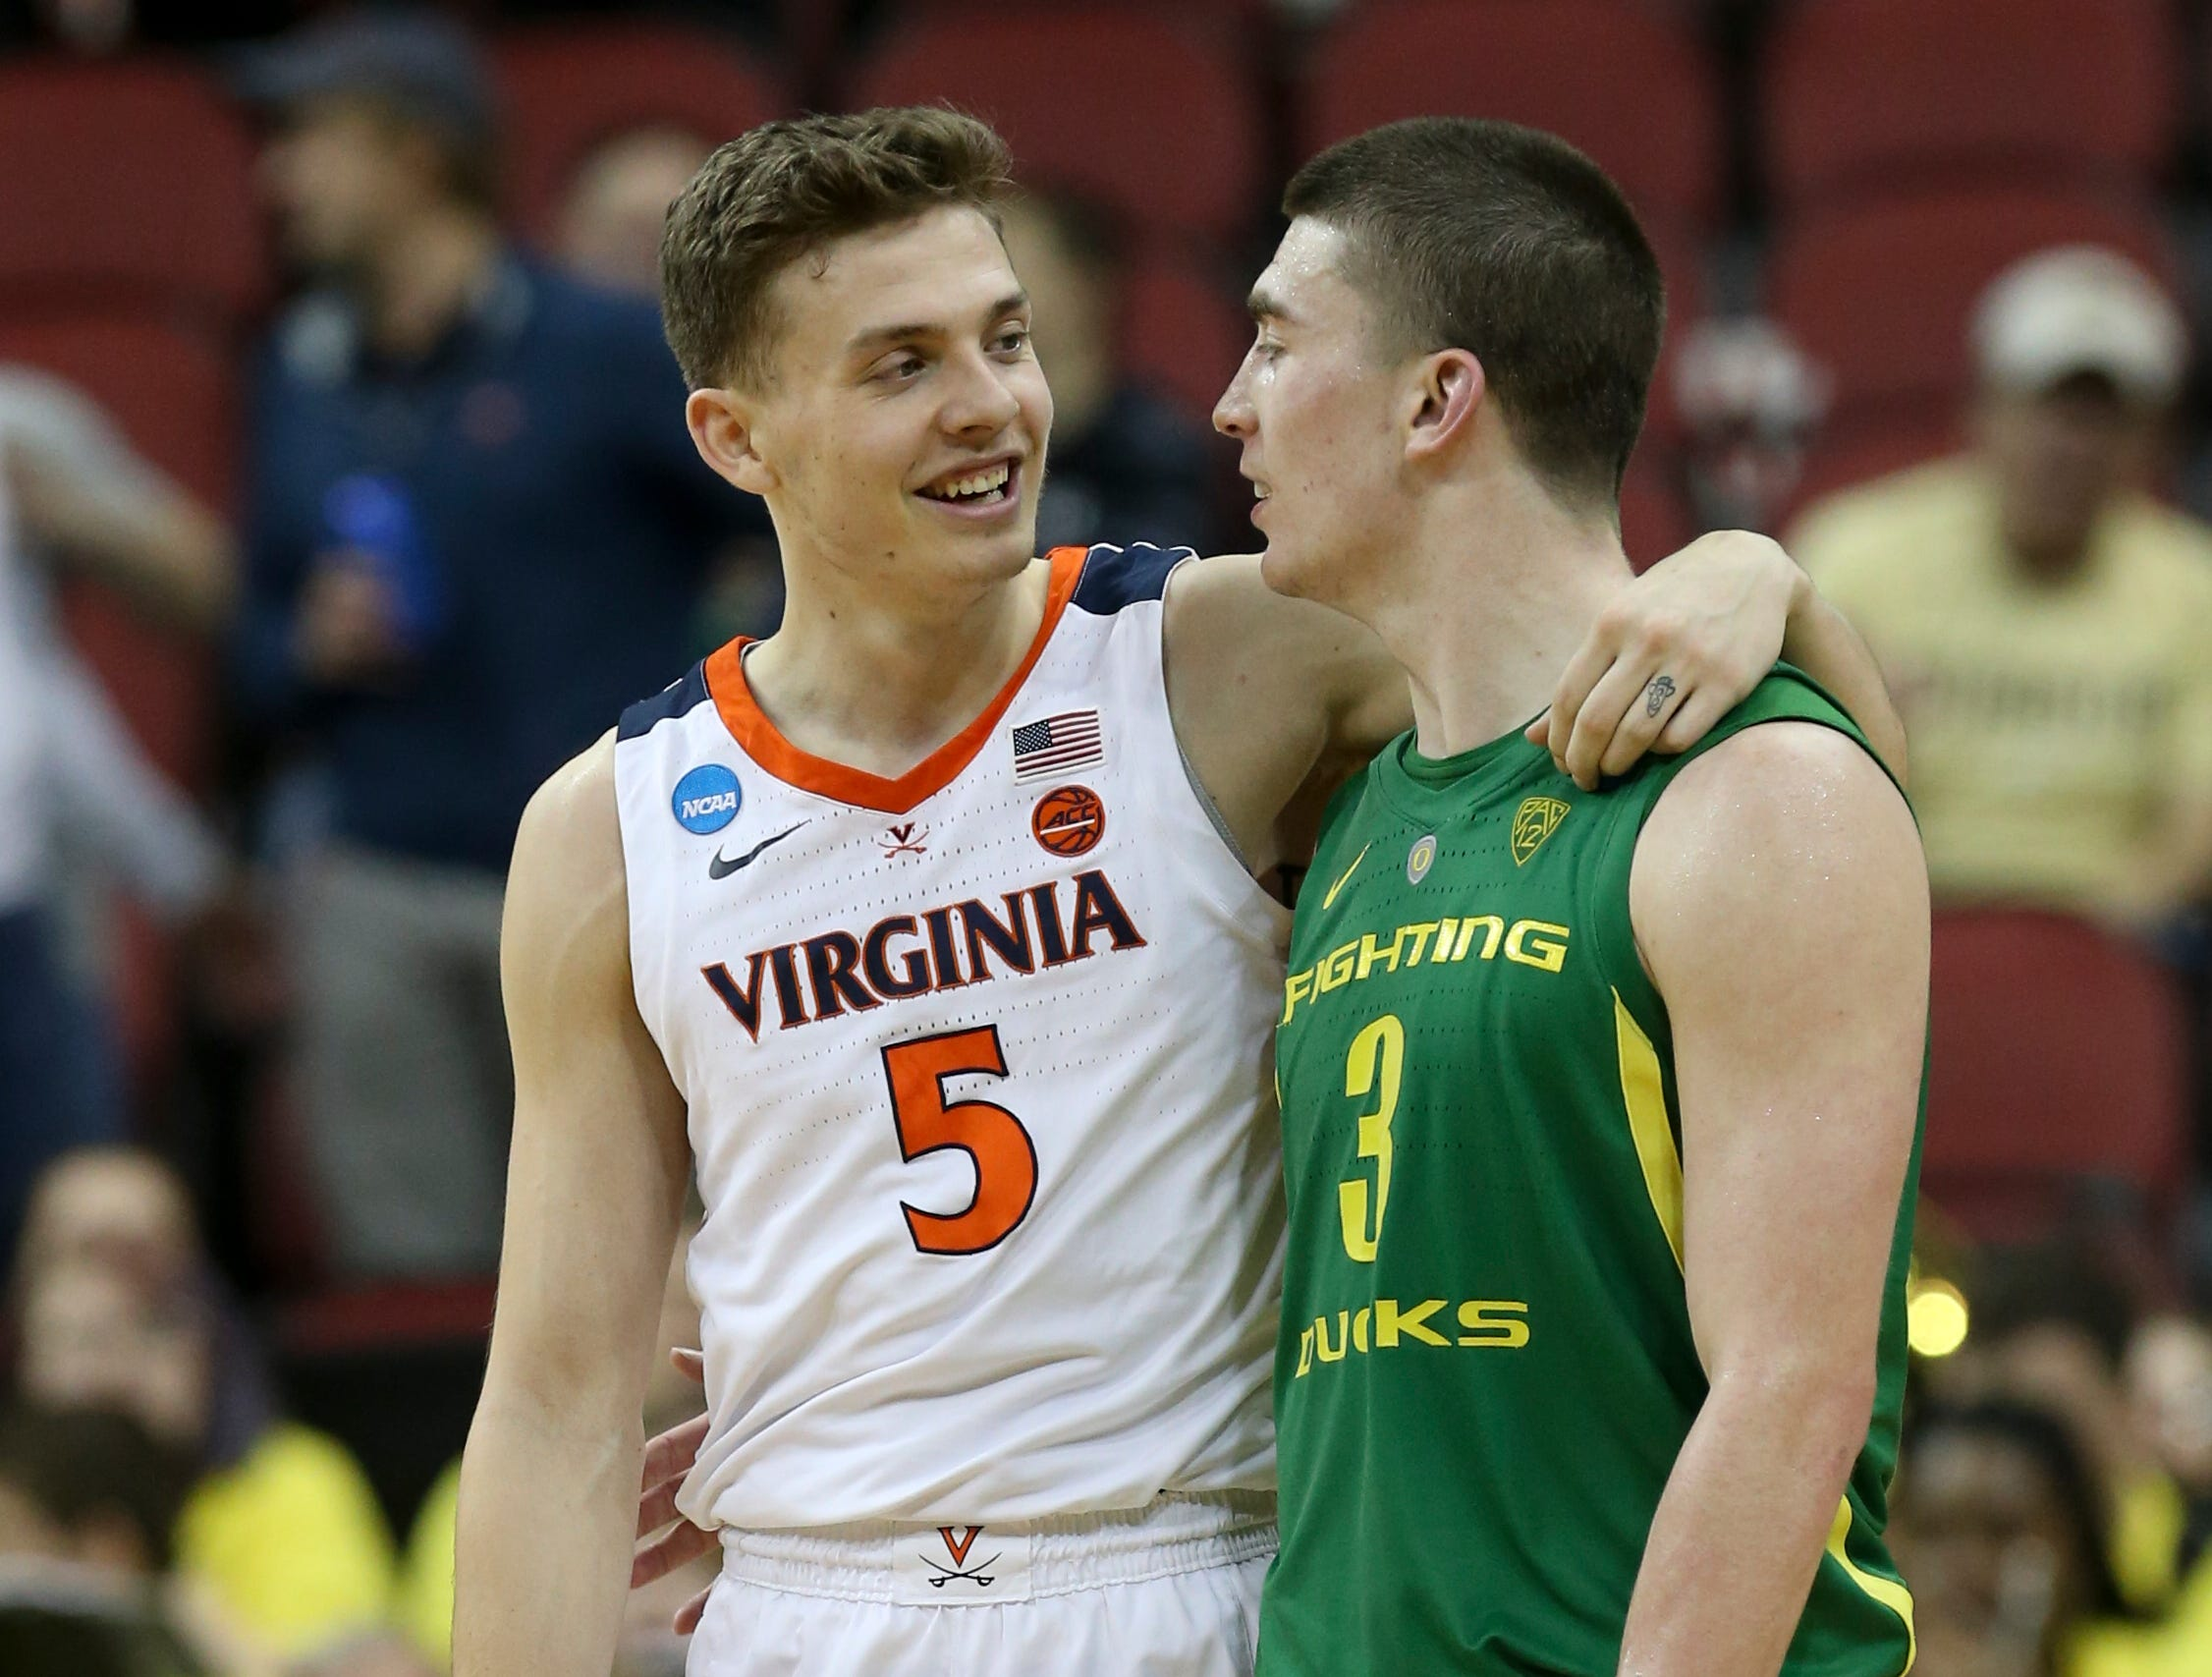 Virginia's Kyle Guy talks to Oregon's Payton Pritchard near the end of the game on March 29 in the NCAA Sweet 16.